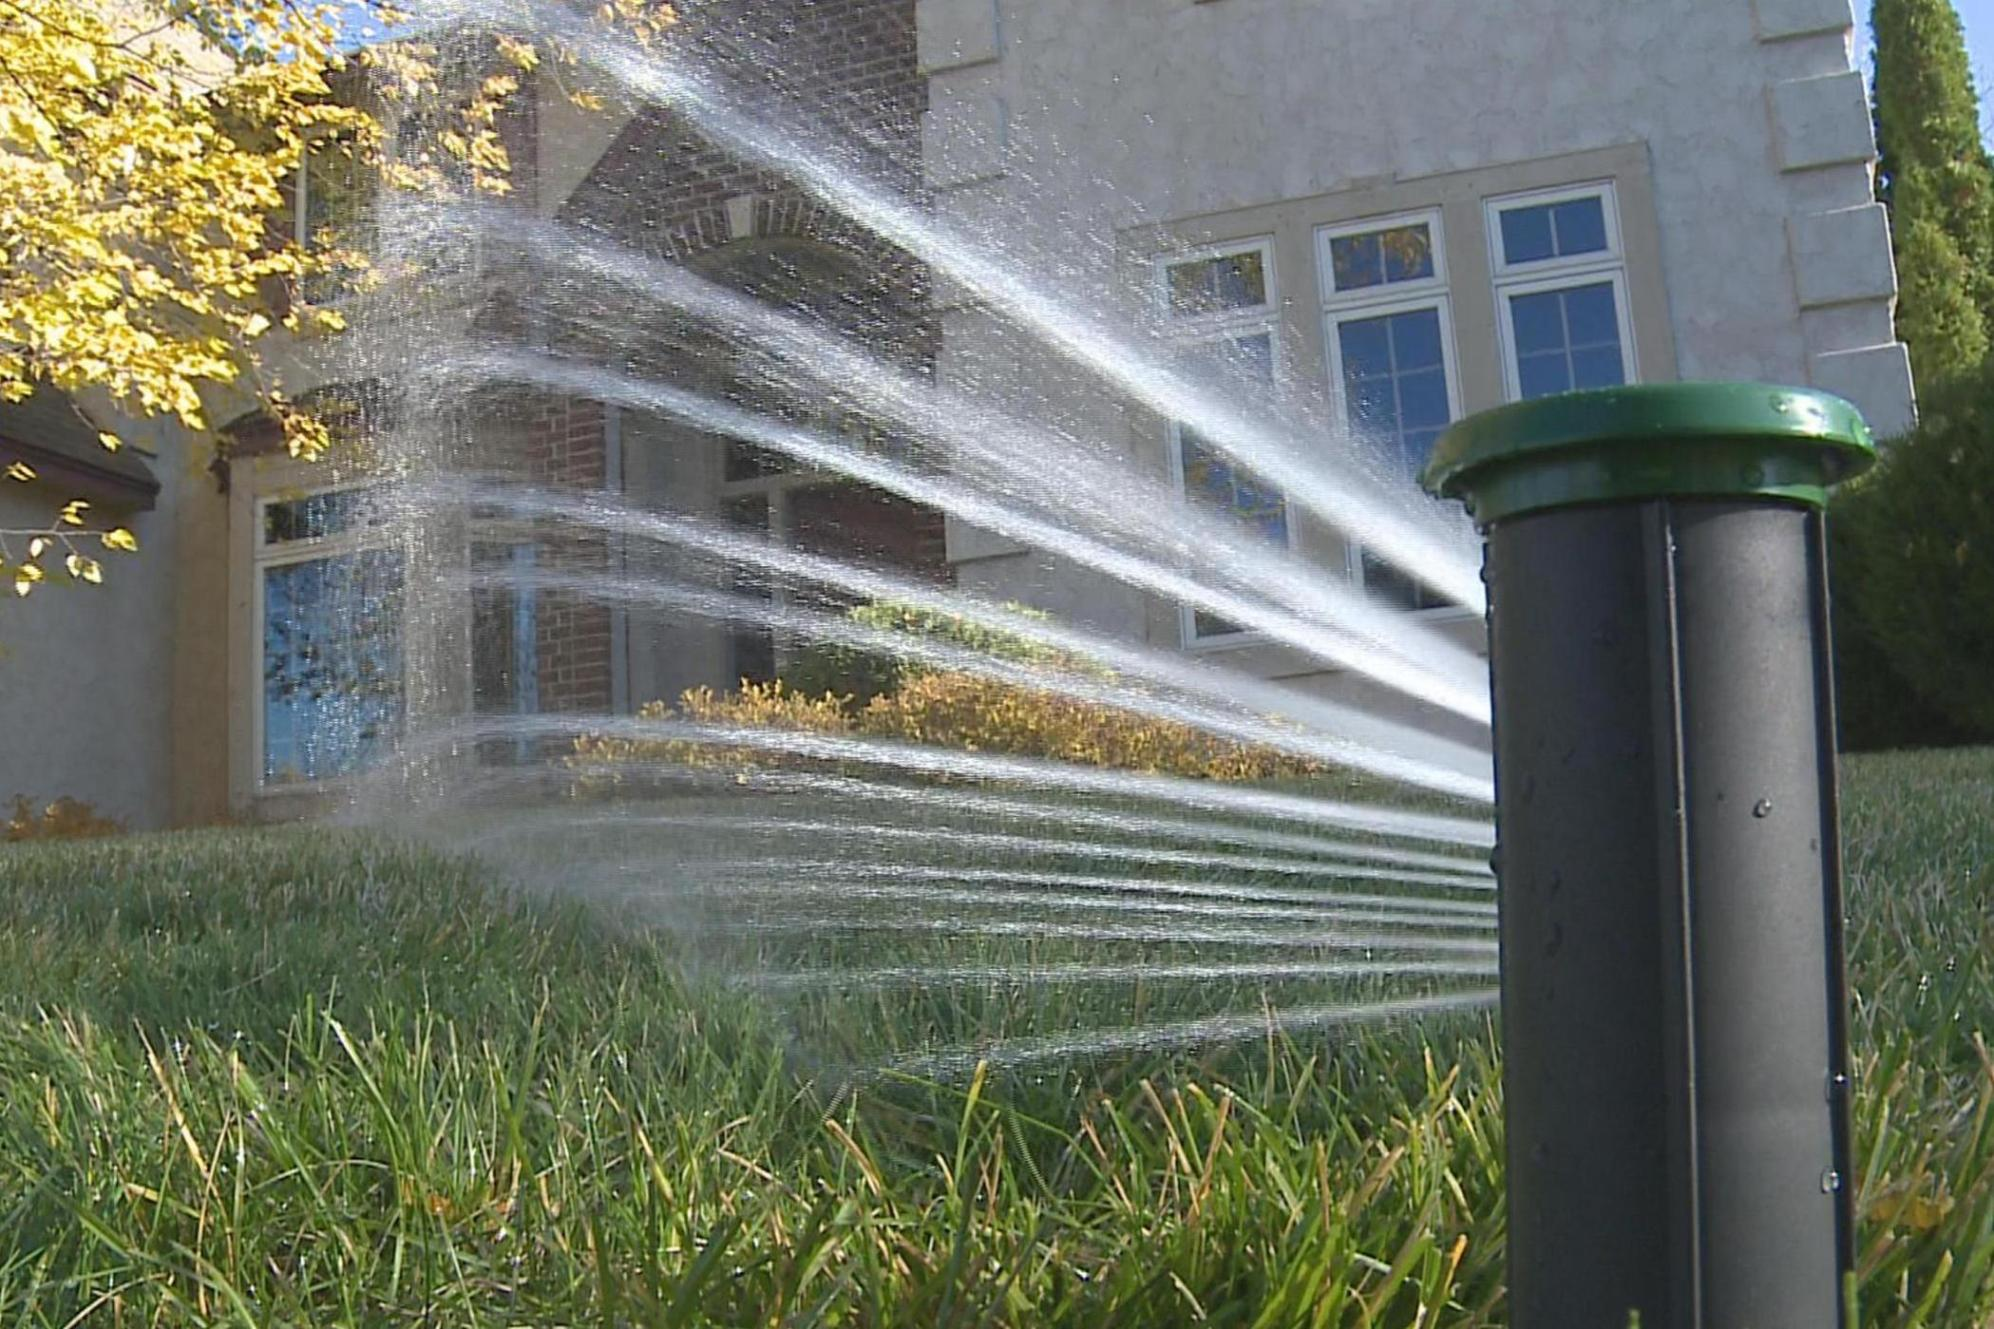 IrriGreen: Smart Sprinklers Match The Shape Of The Lawn